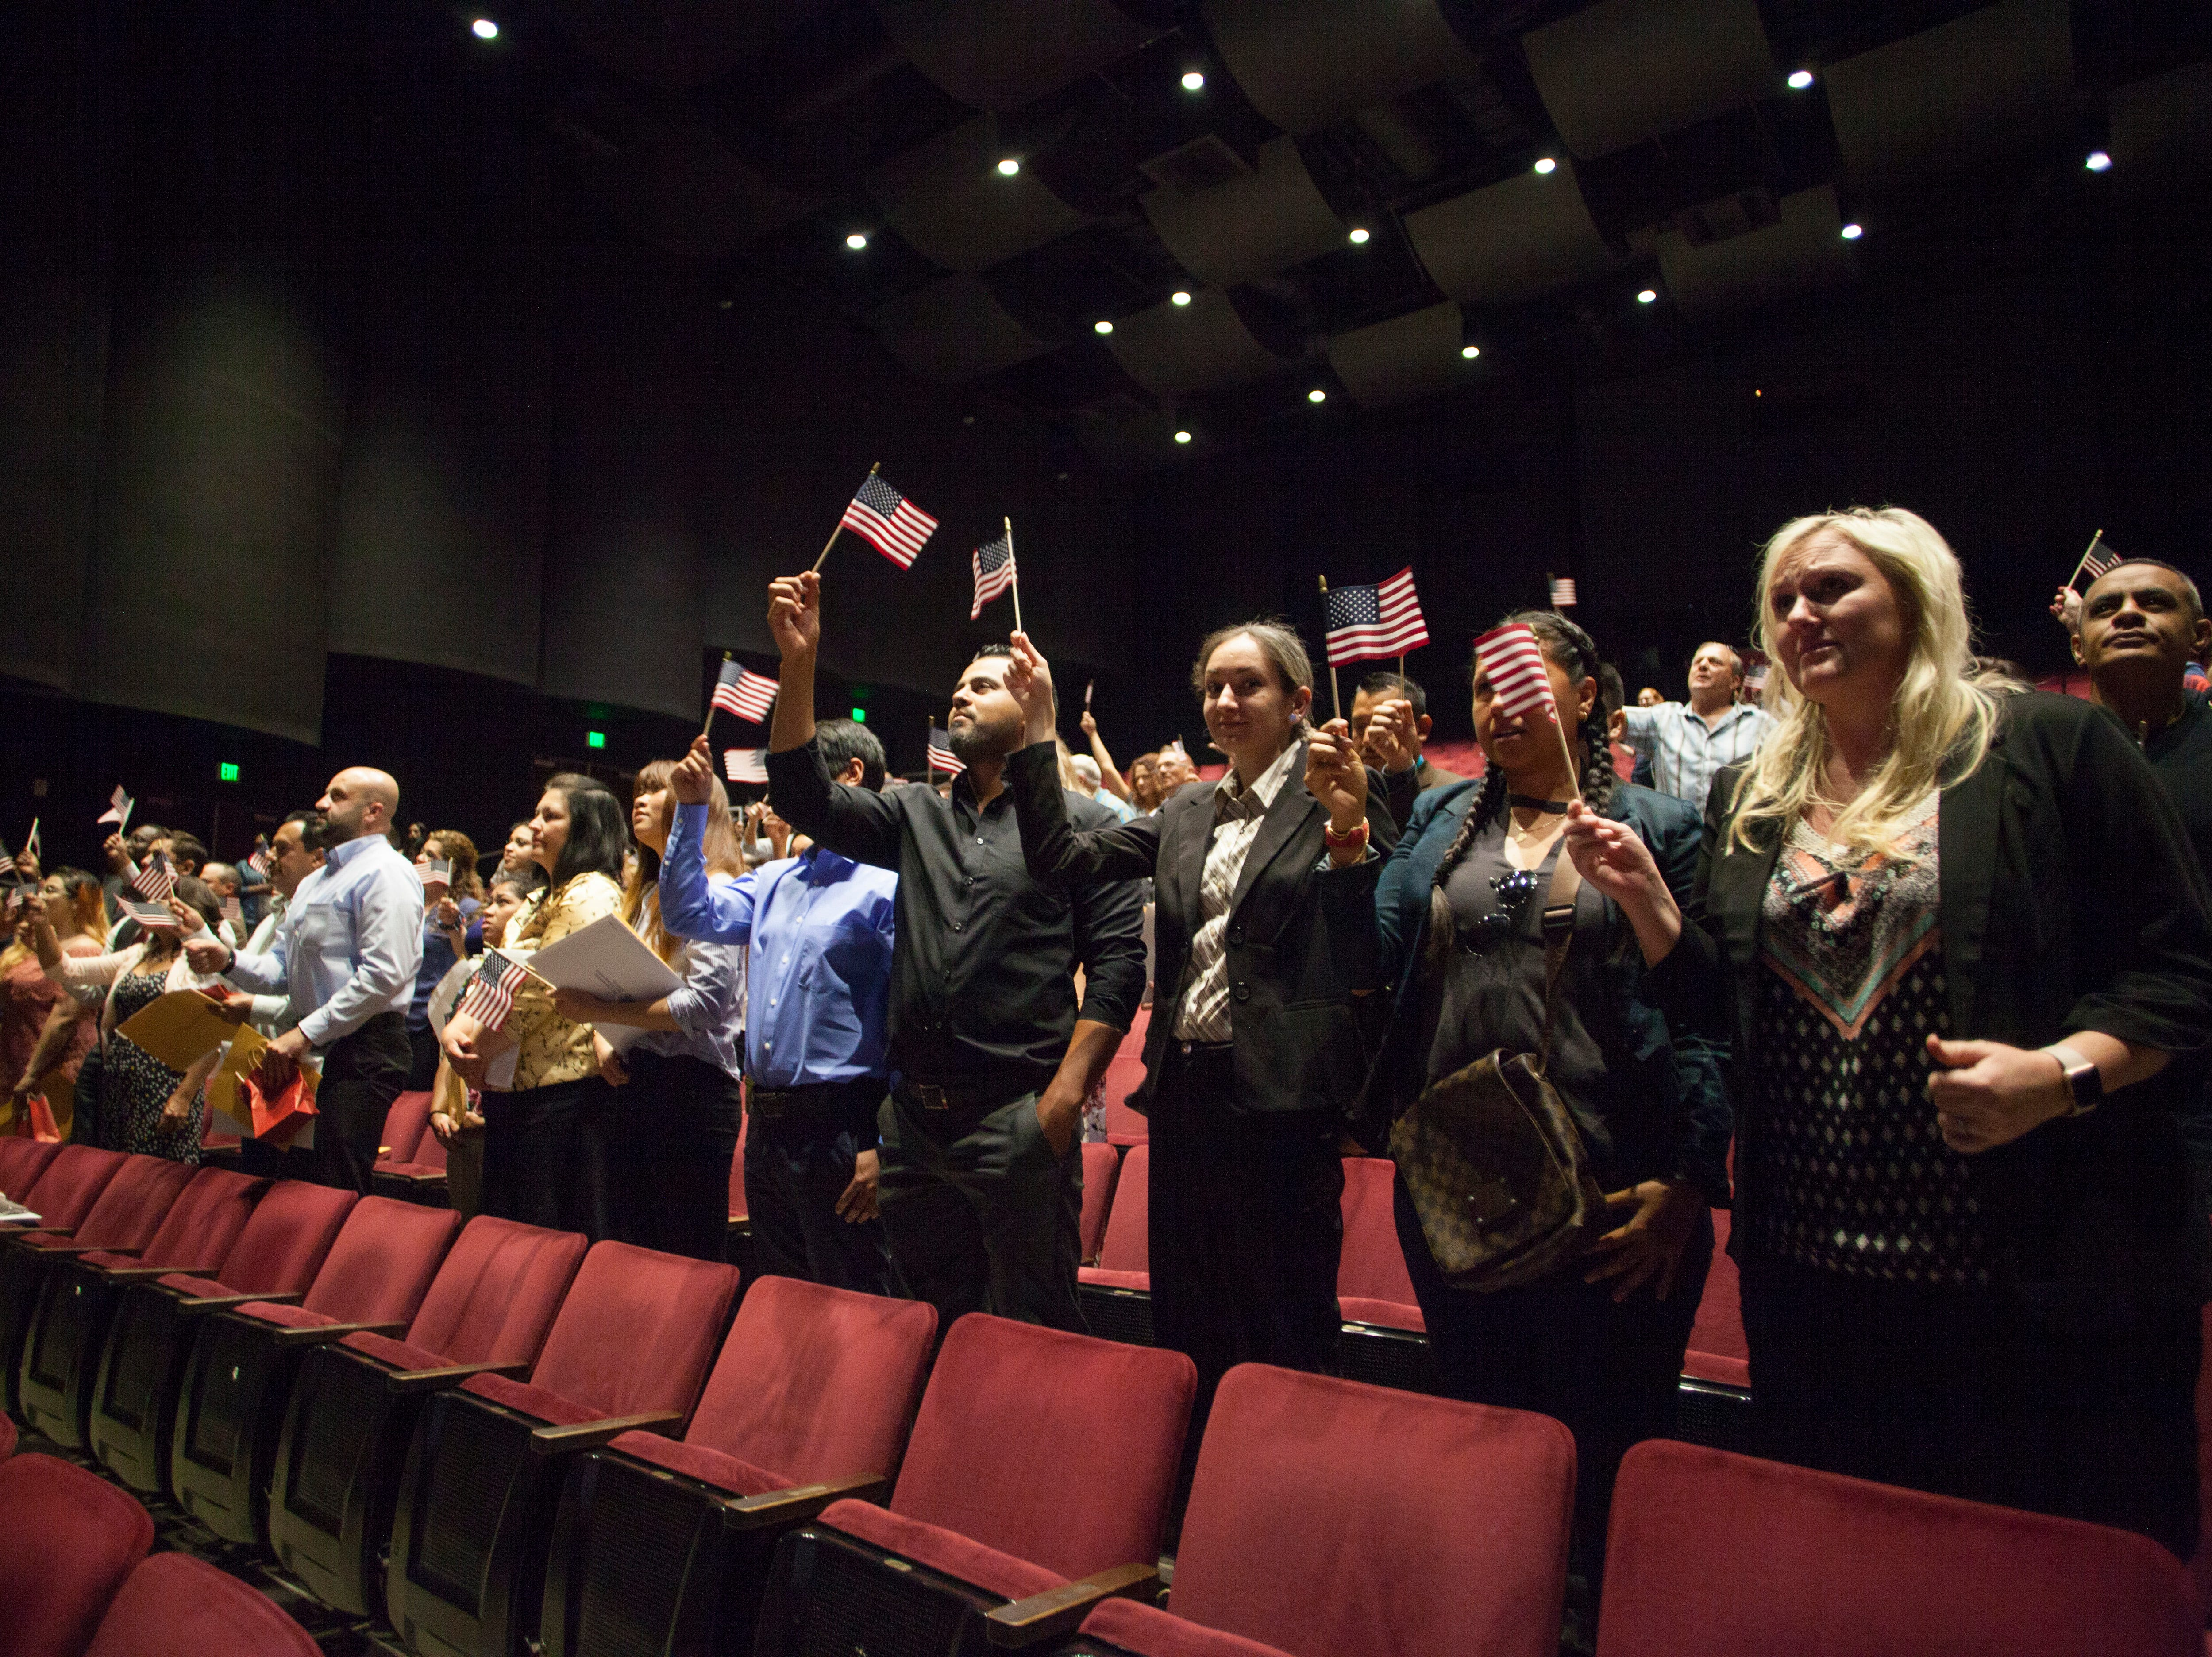 A crowd of people gathered at the Cox Auditorium at Dixie State University to recognize 31 new U.S. citizens sworn in during a naturalization ceremony Tuesday, May 14, 2019.